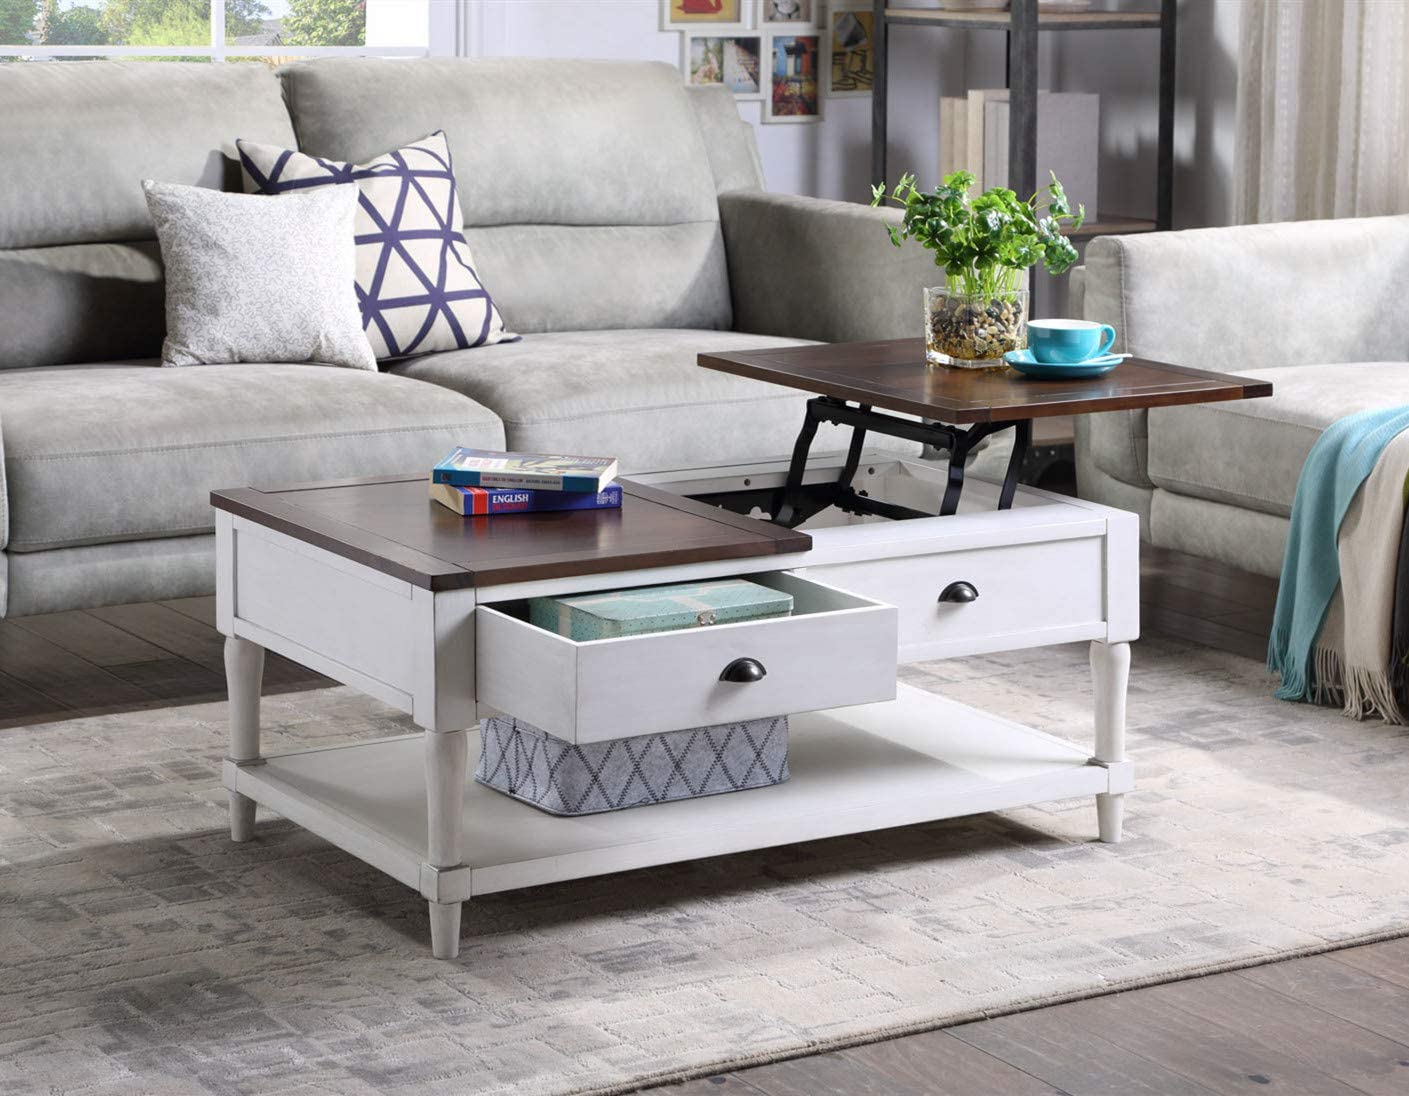 SSLine Lift Top Wooden Coffee Table